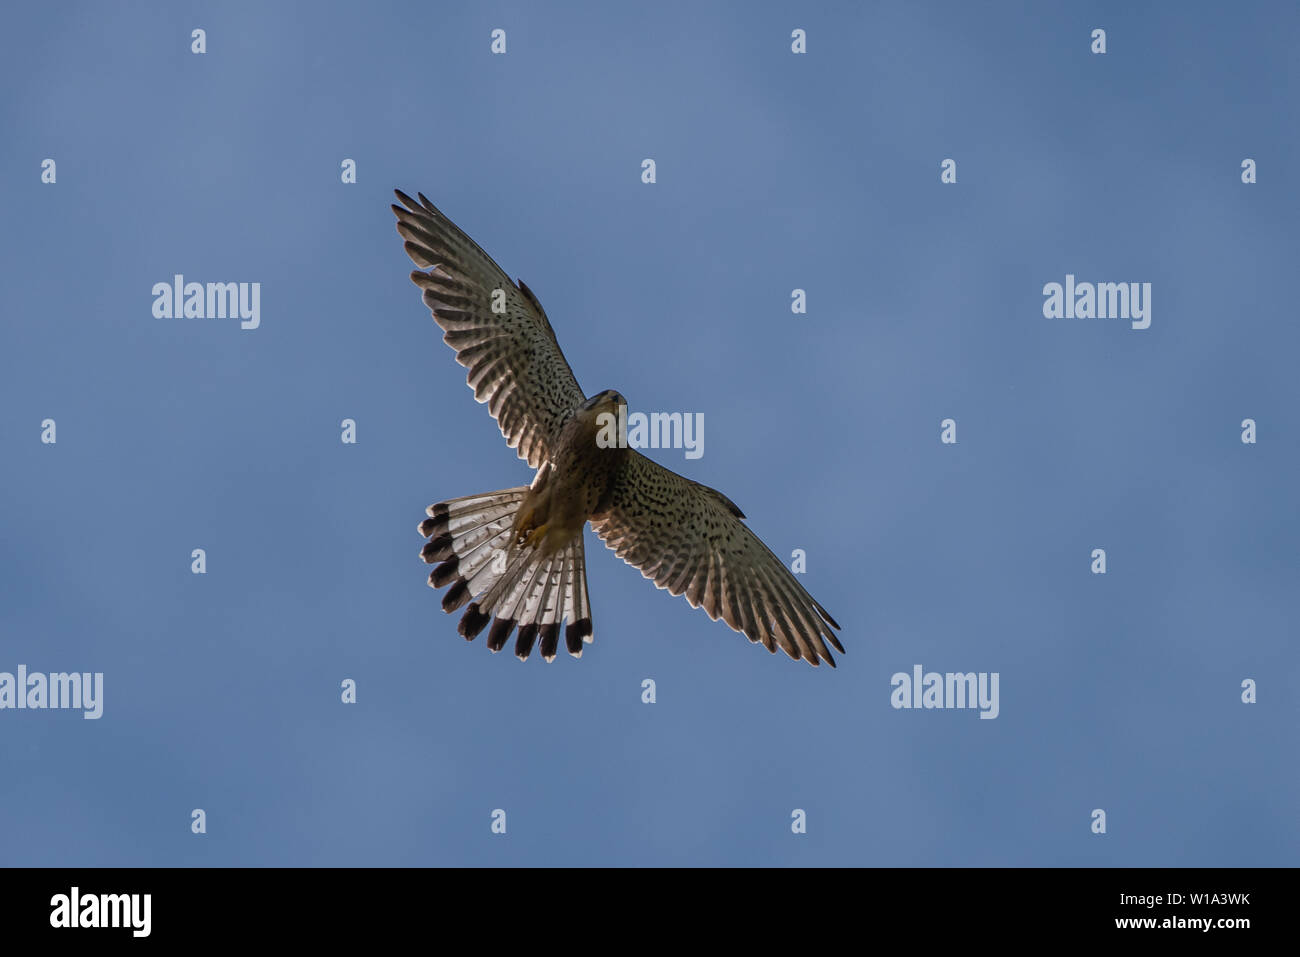 Flying male Kestrel (Falco tinnunculus) with the sun shine through the wide spread tail feathers against a blue sky Stock Photo